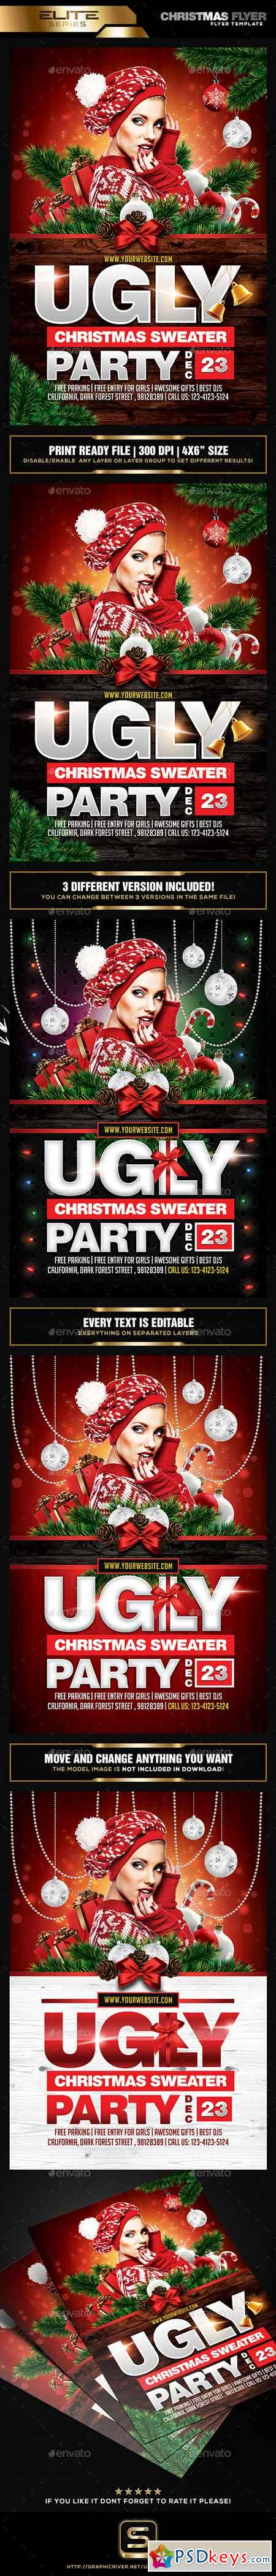 Ugly Christmas Sweater Party Flyer 18704621